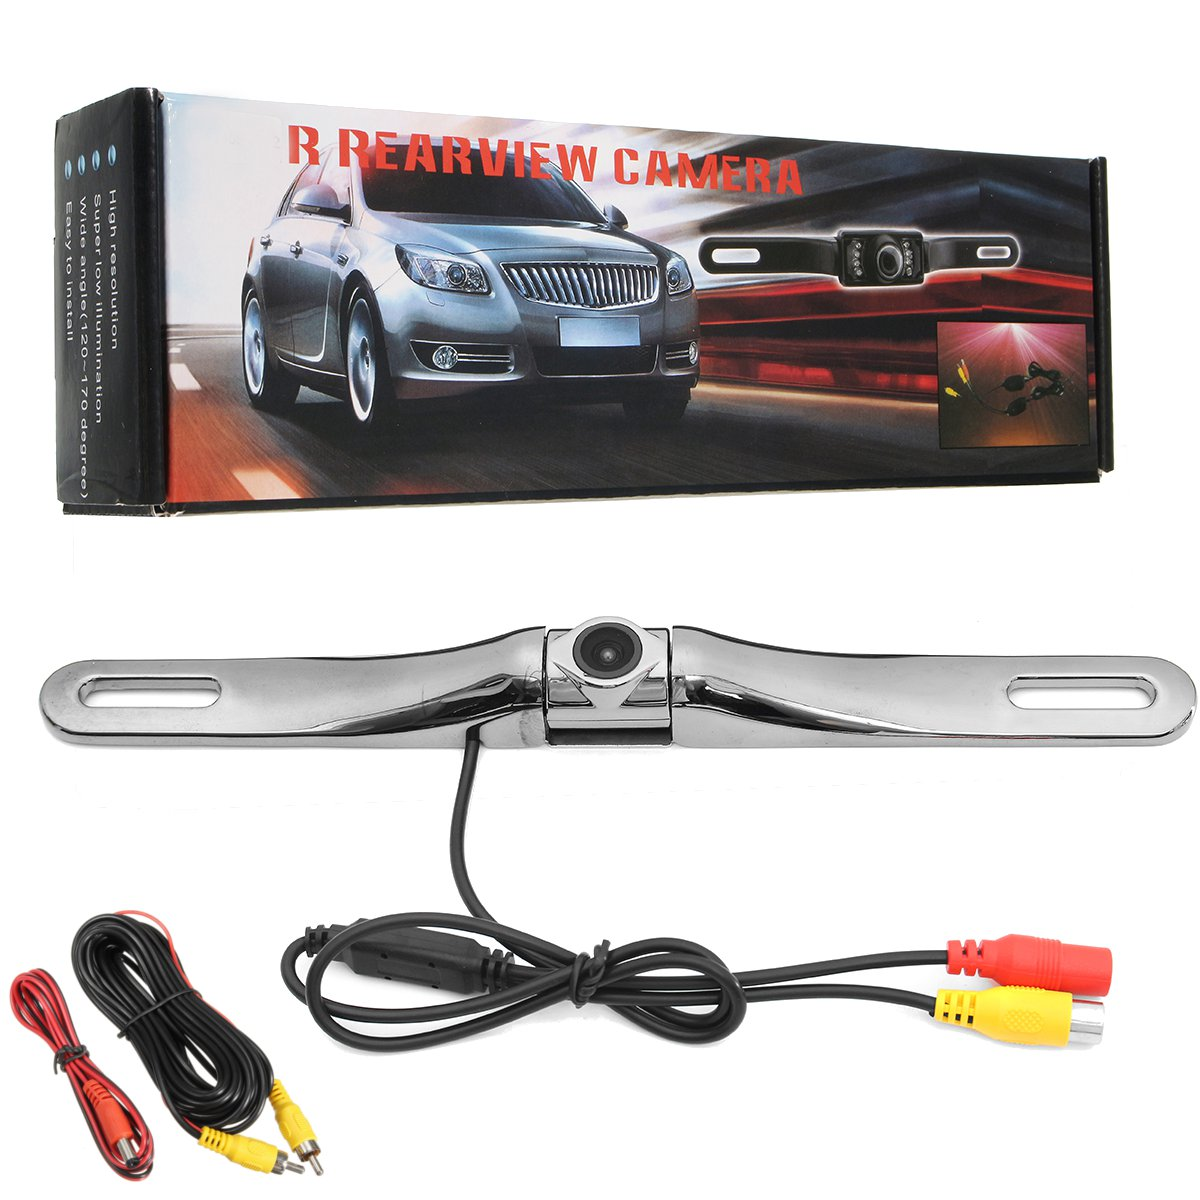 170° Night Vision Car License Plate Rear View Camera Built-in Distance Scale Lines Backup Parking/Reverse Assist Waterproof Zinc Metal Chrome